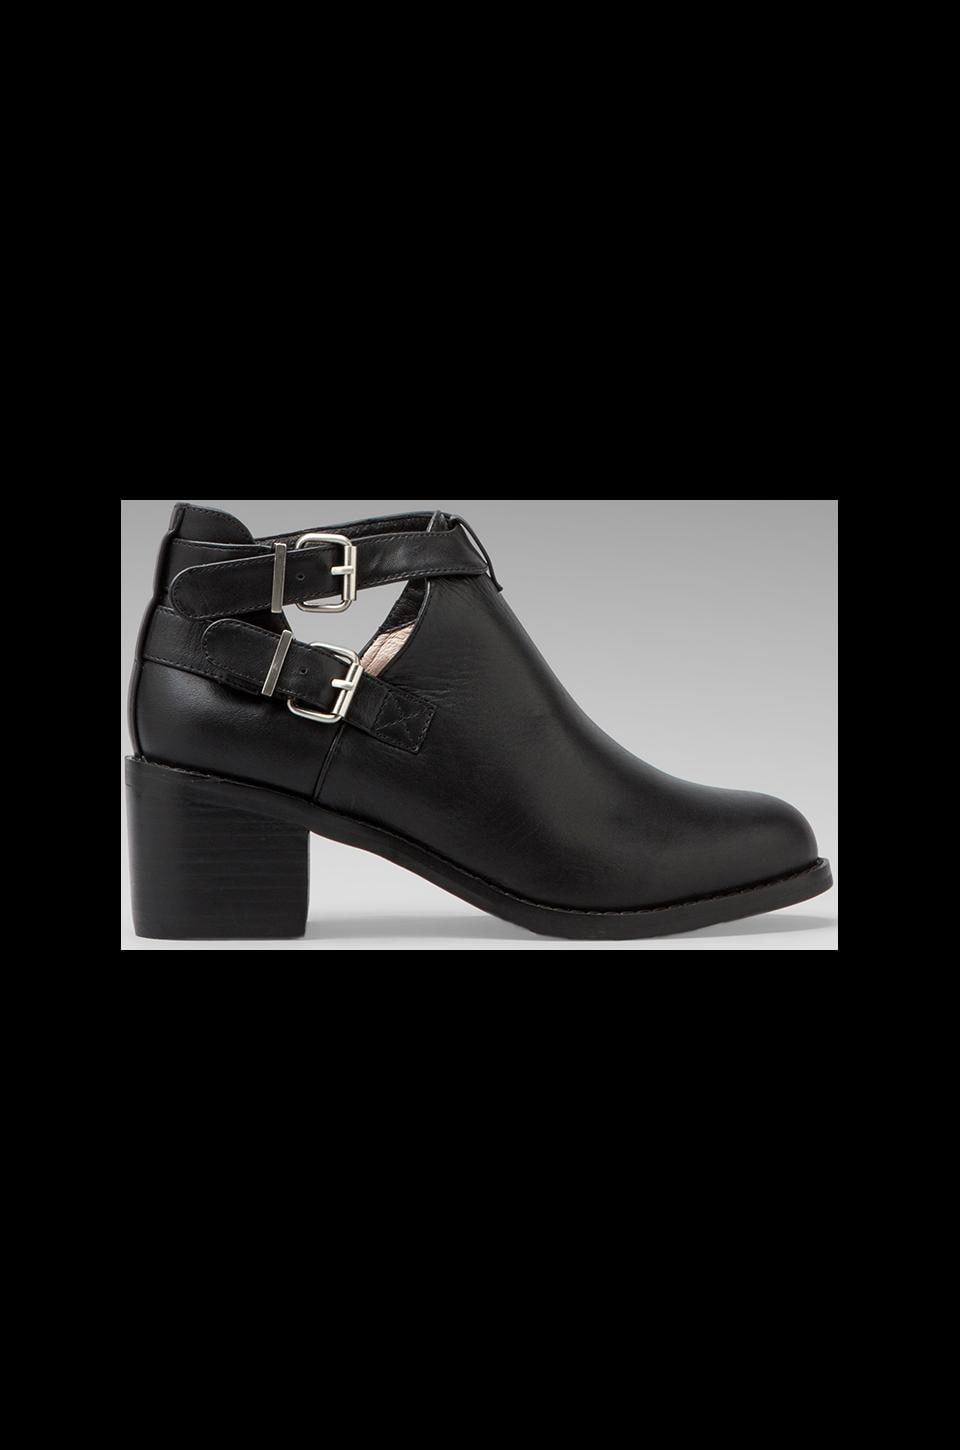 SENSO Isabelle II Boot in Black